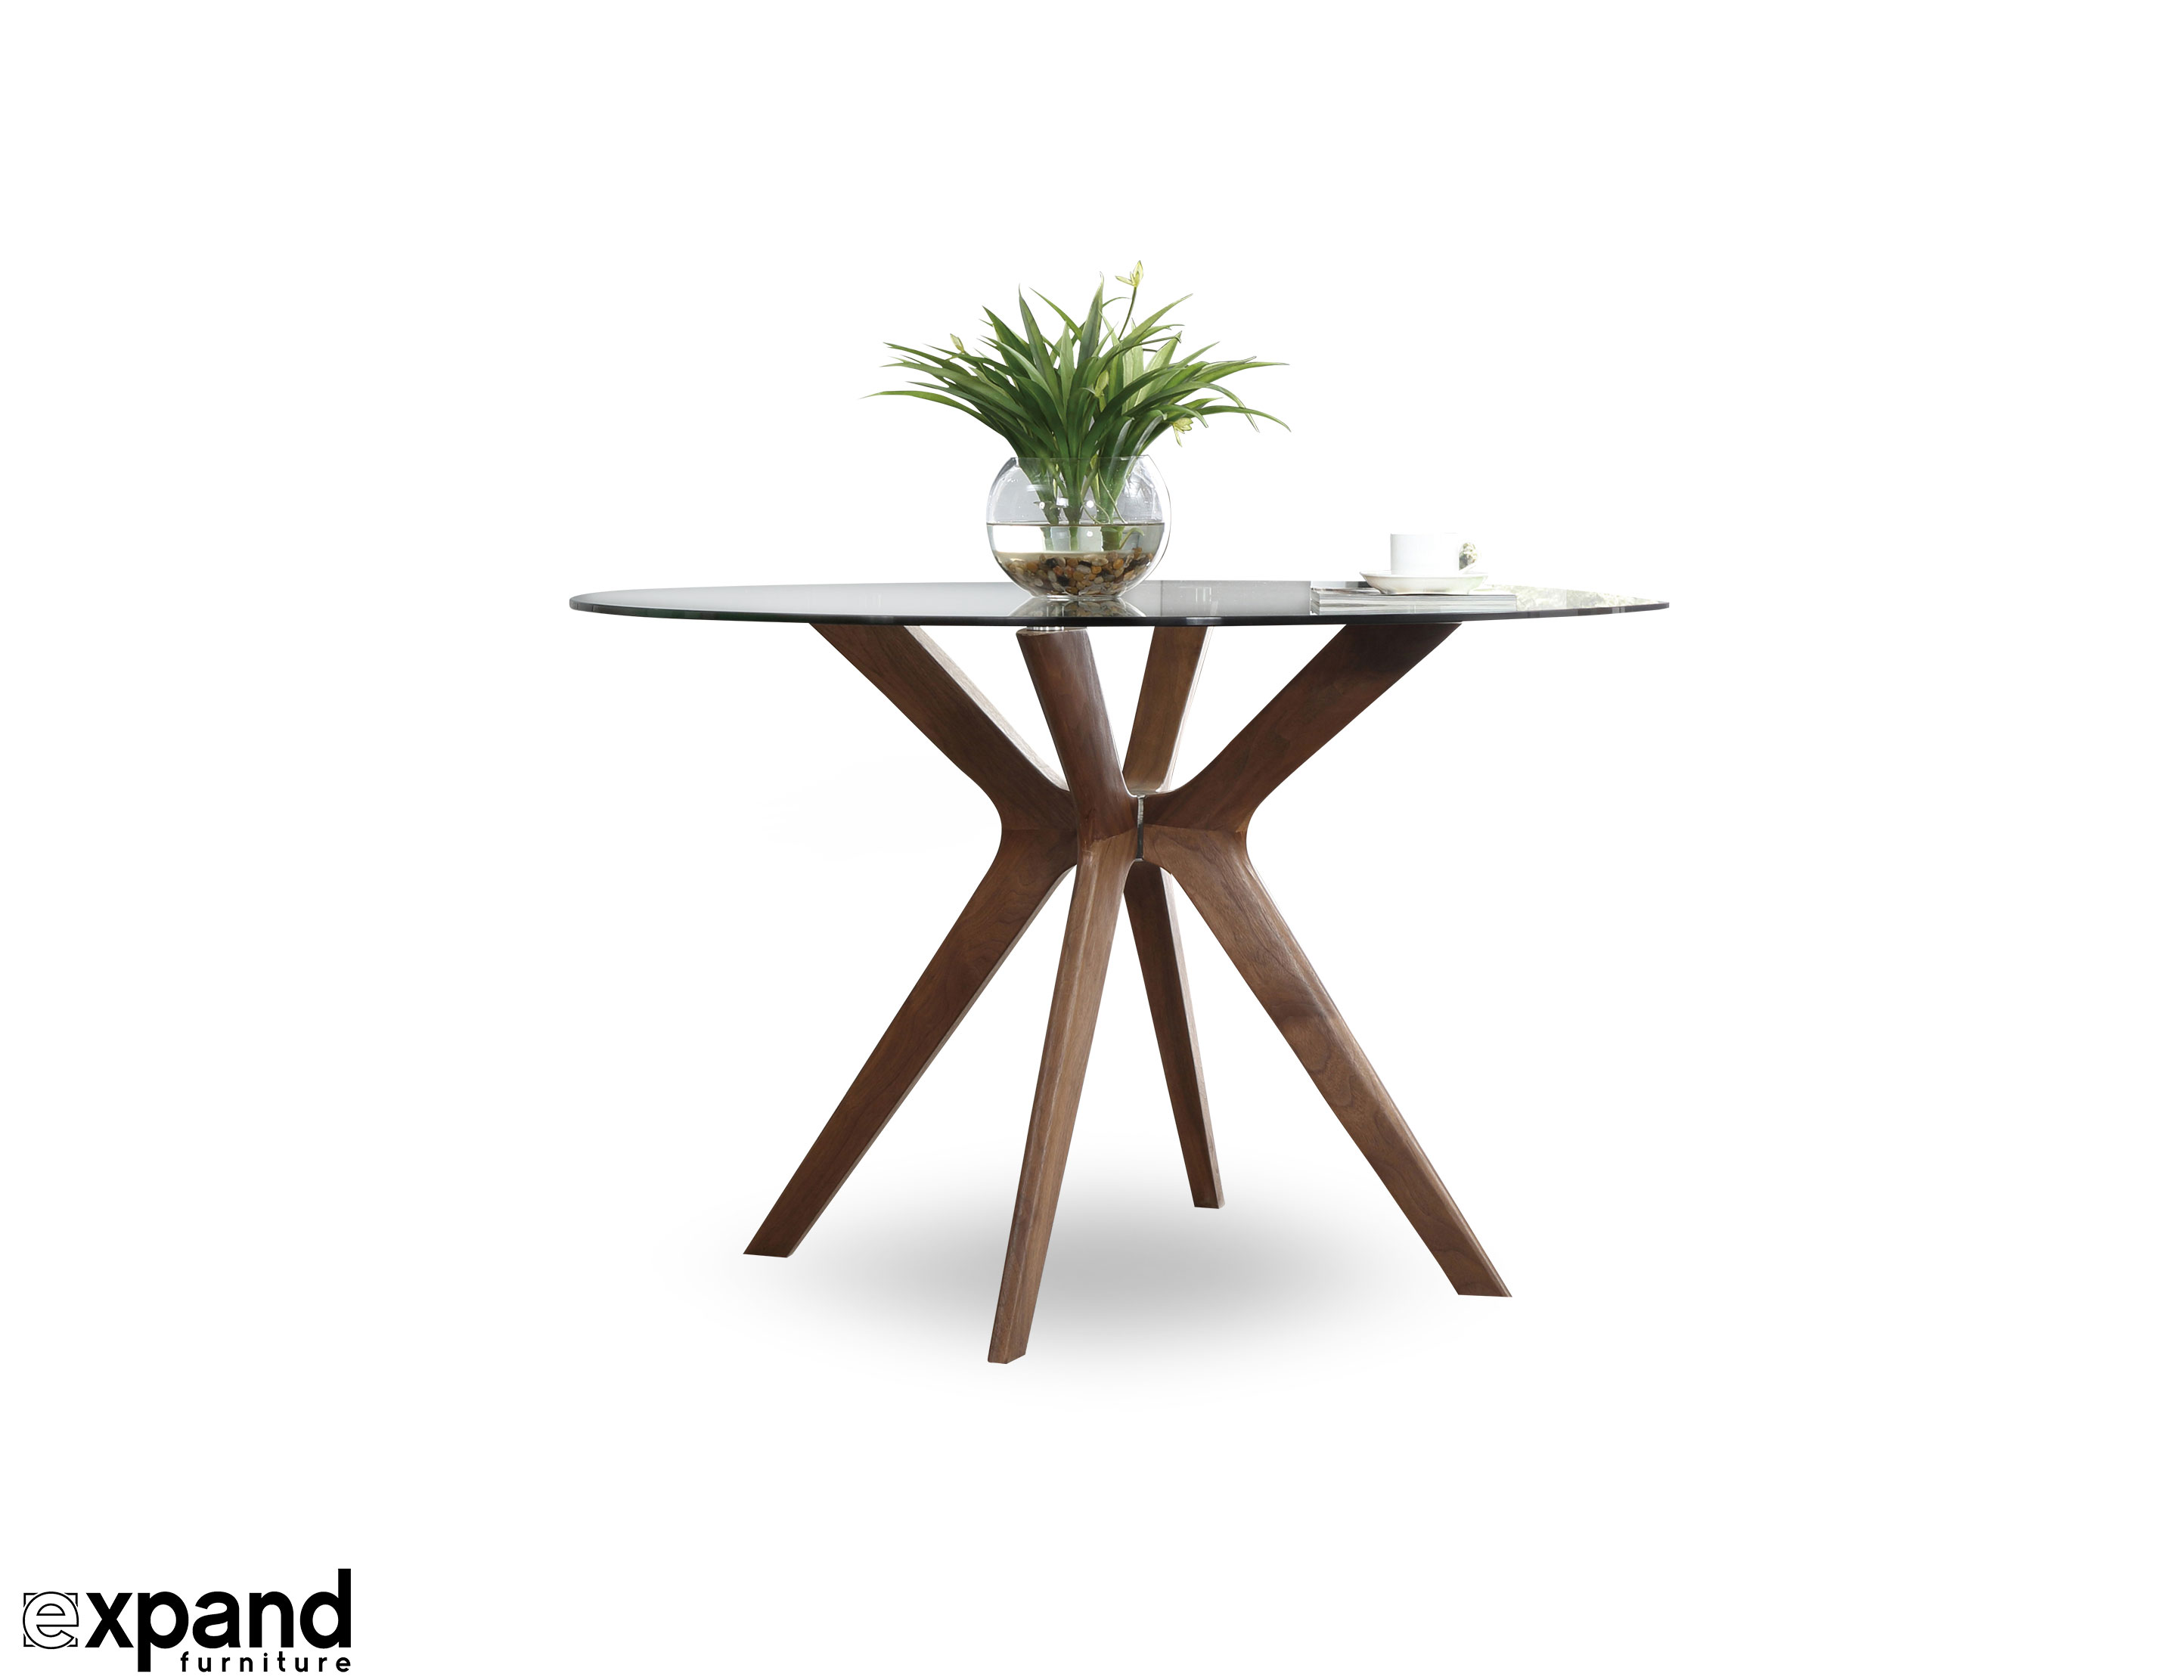 space saving tables extending dining occasional the branch clear glass round table that rests wood legs cassie accent with tweed furniture grey outdoor metal ikea antique nesting